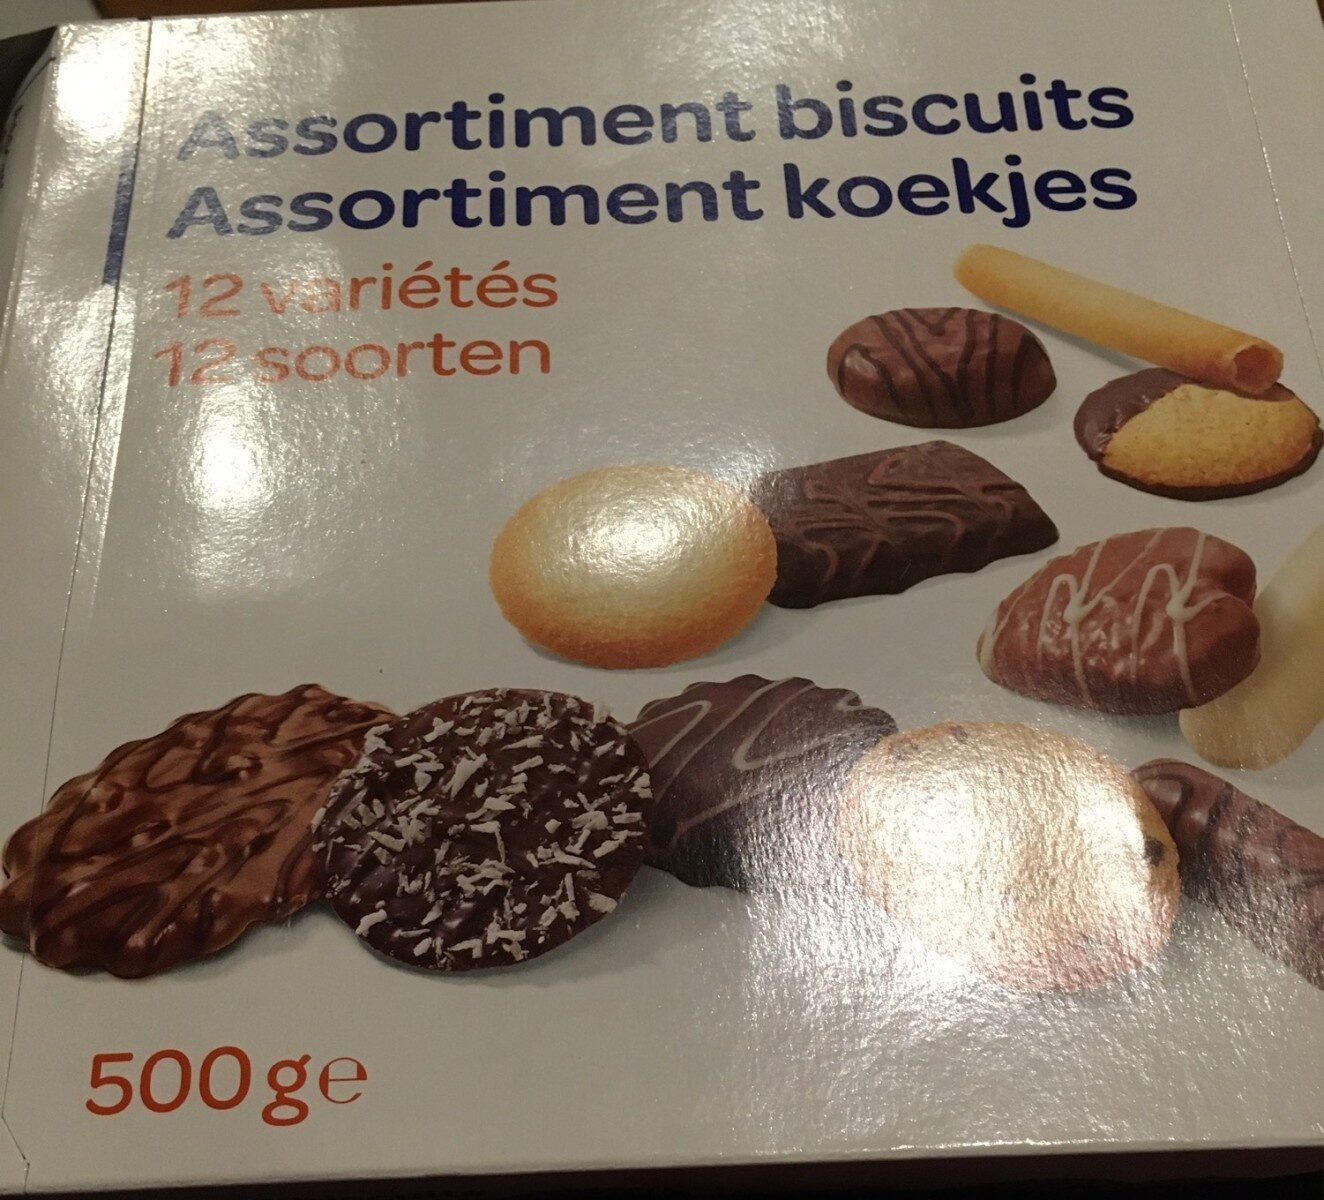 Assortiment de biscuits - Product - fr